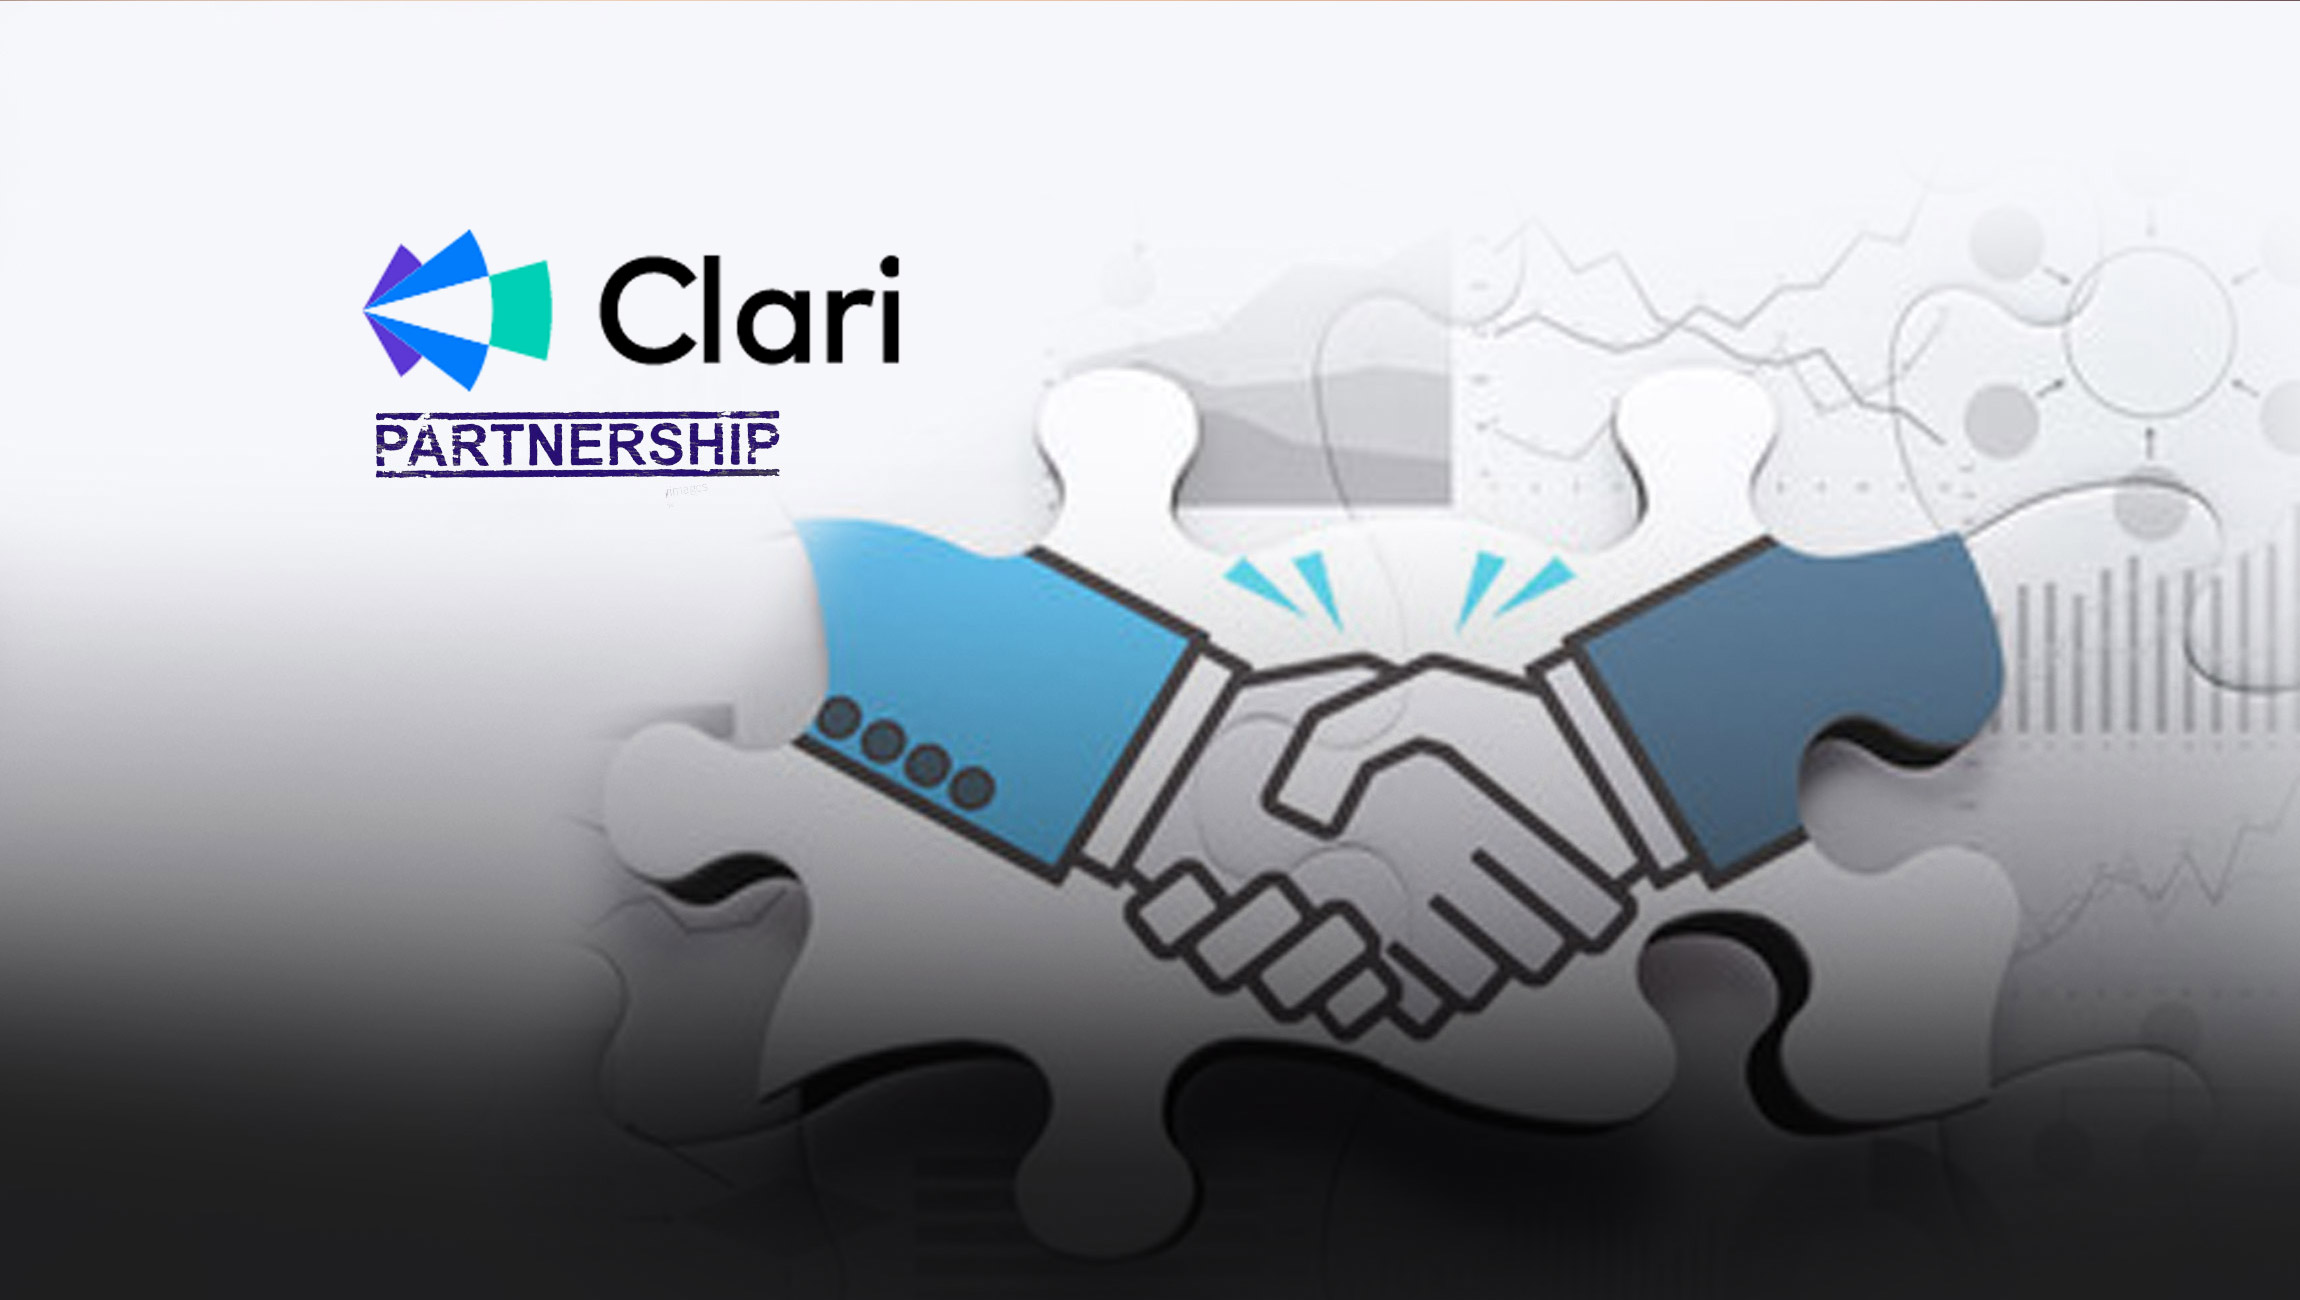 Clari Secures Workday as Strategic Investor and Partner